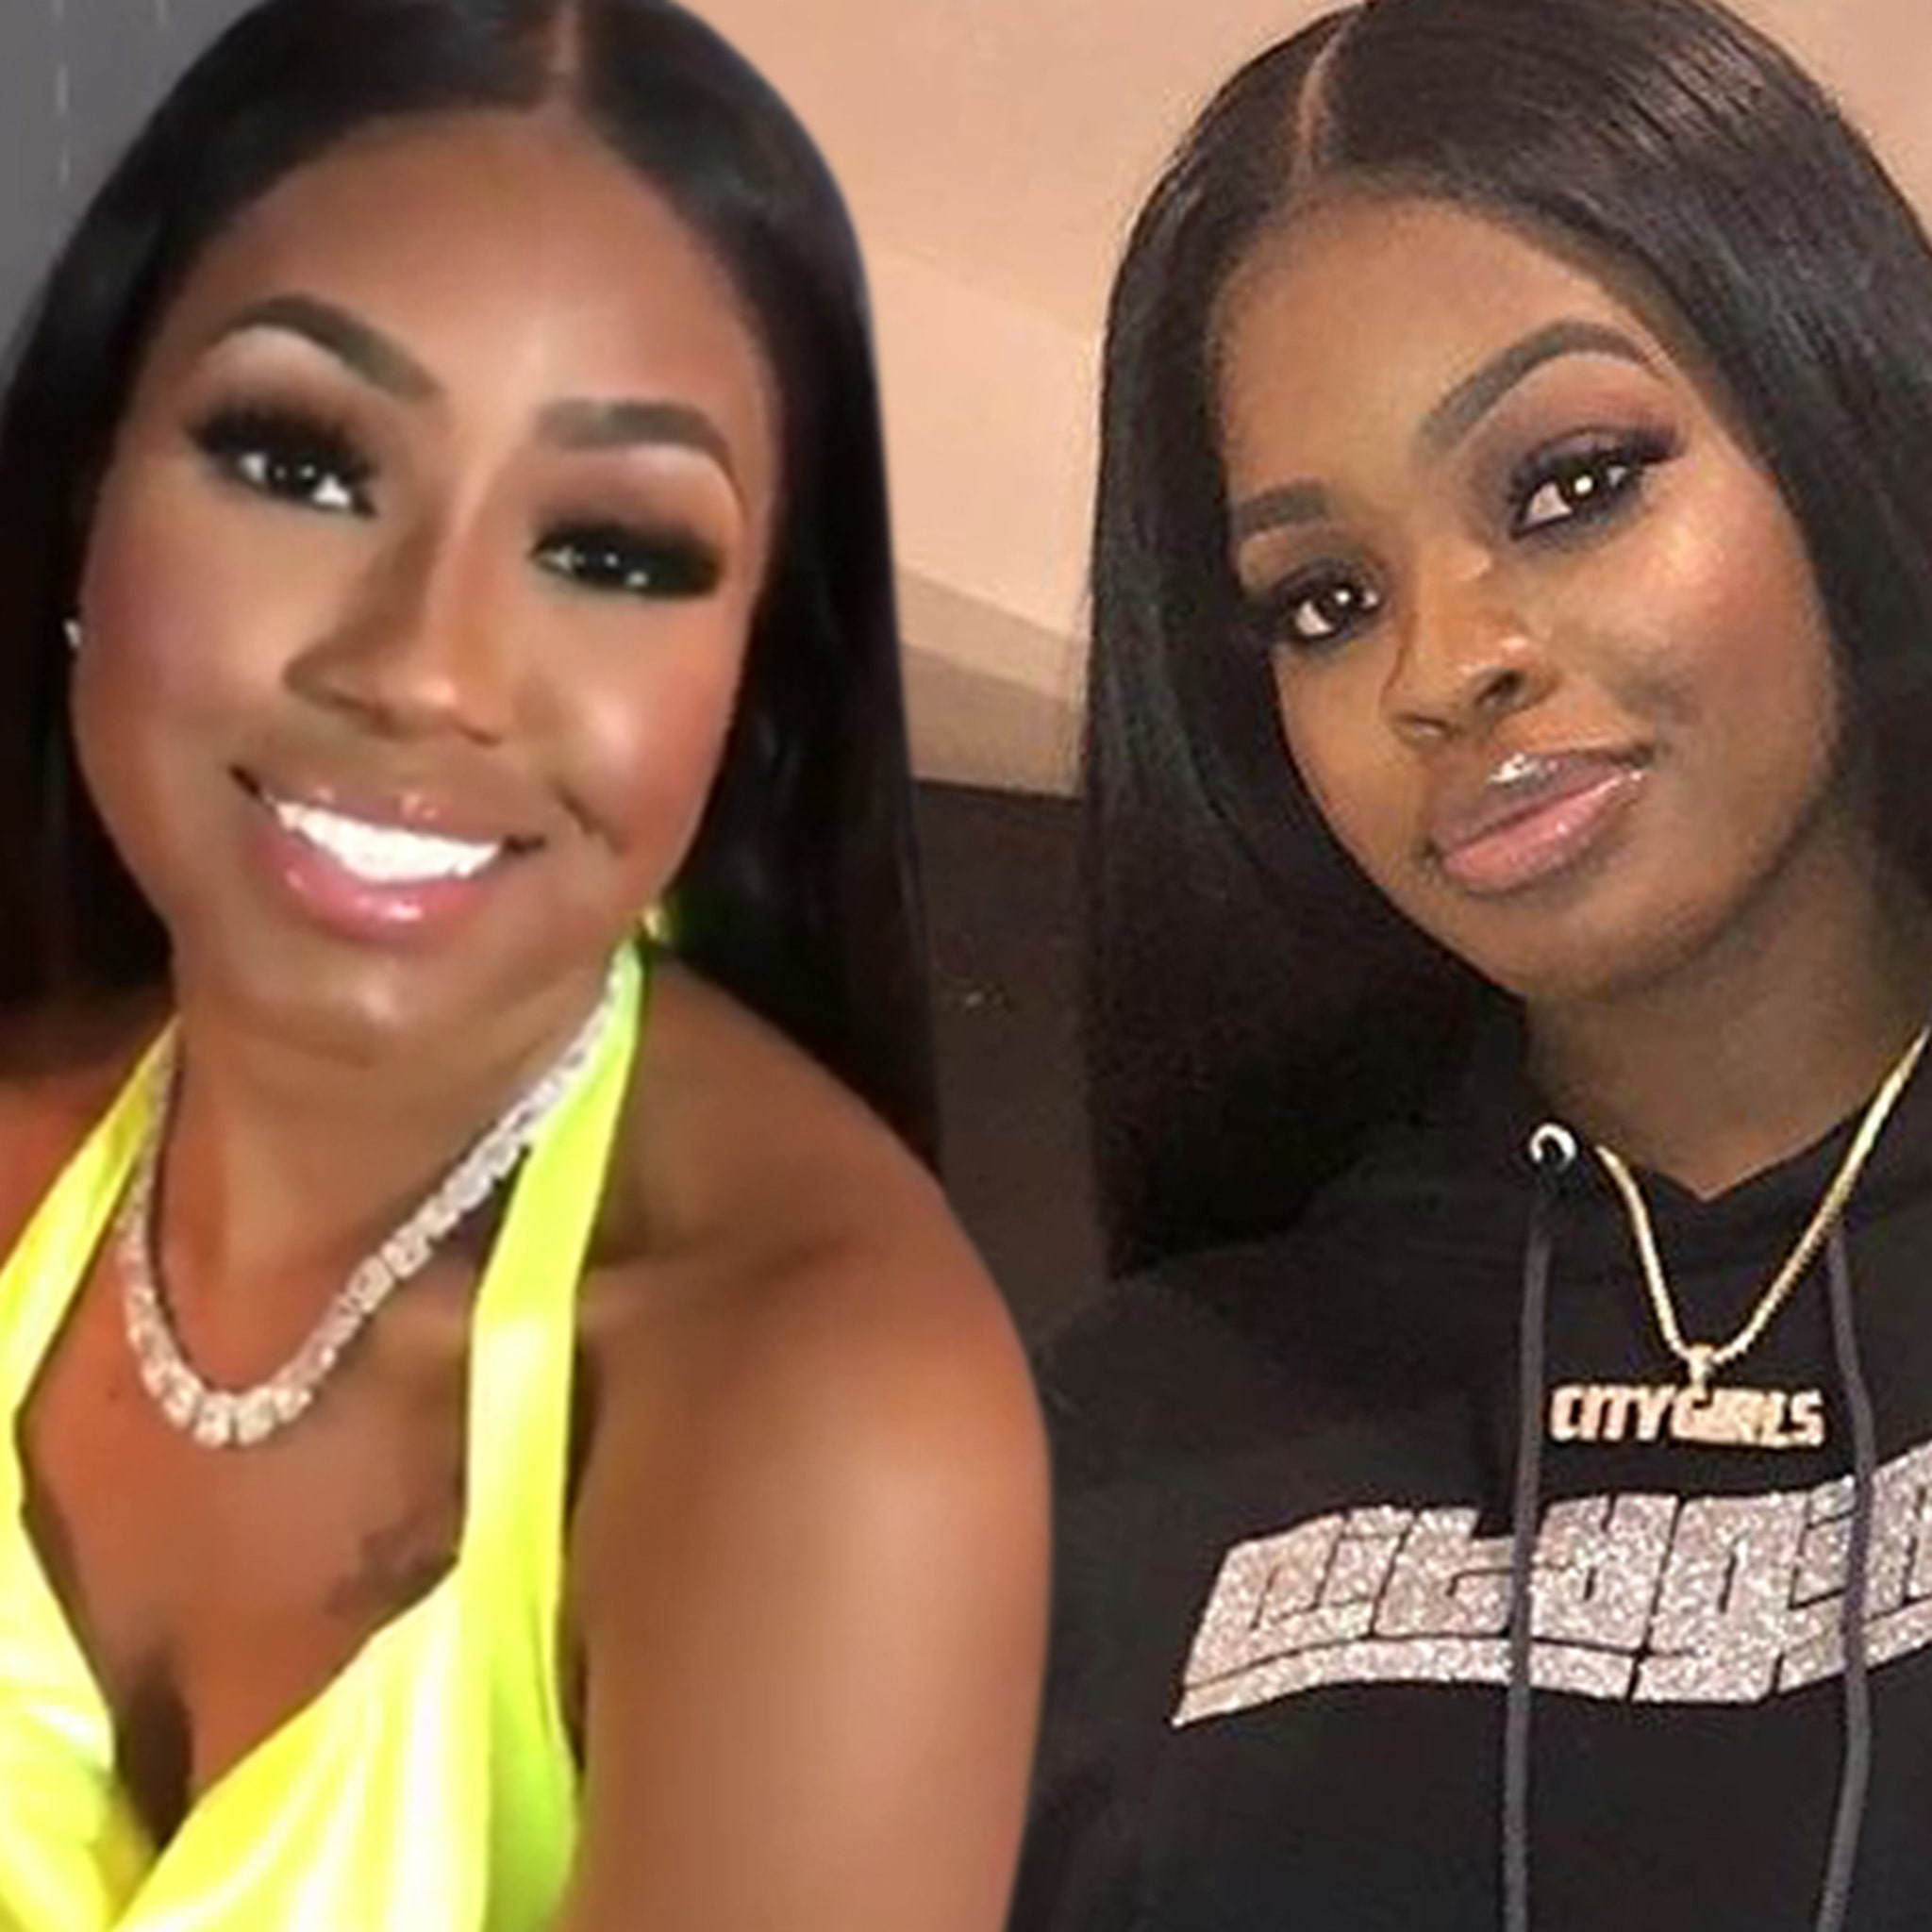 City Girls Rapper Yung Miami Buys Jewelry for JT as Prison Release Present